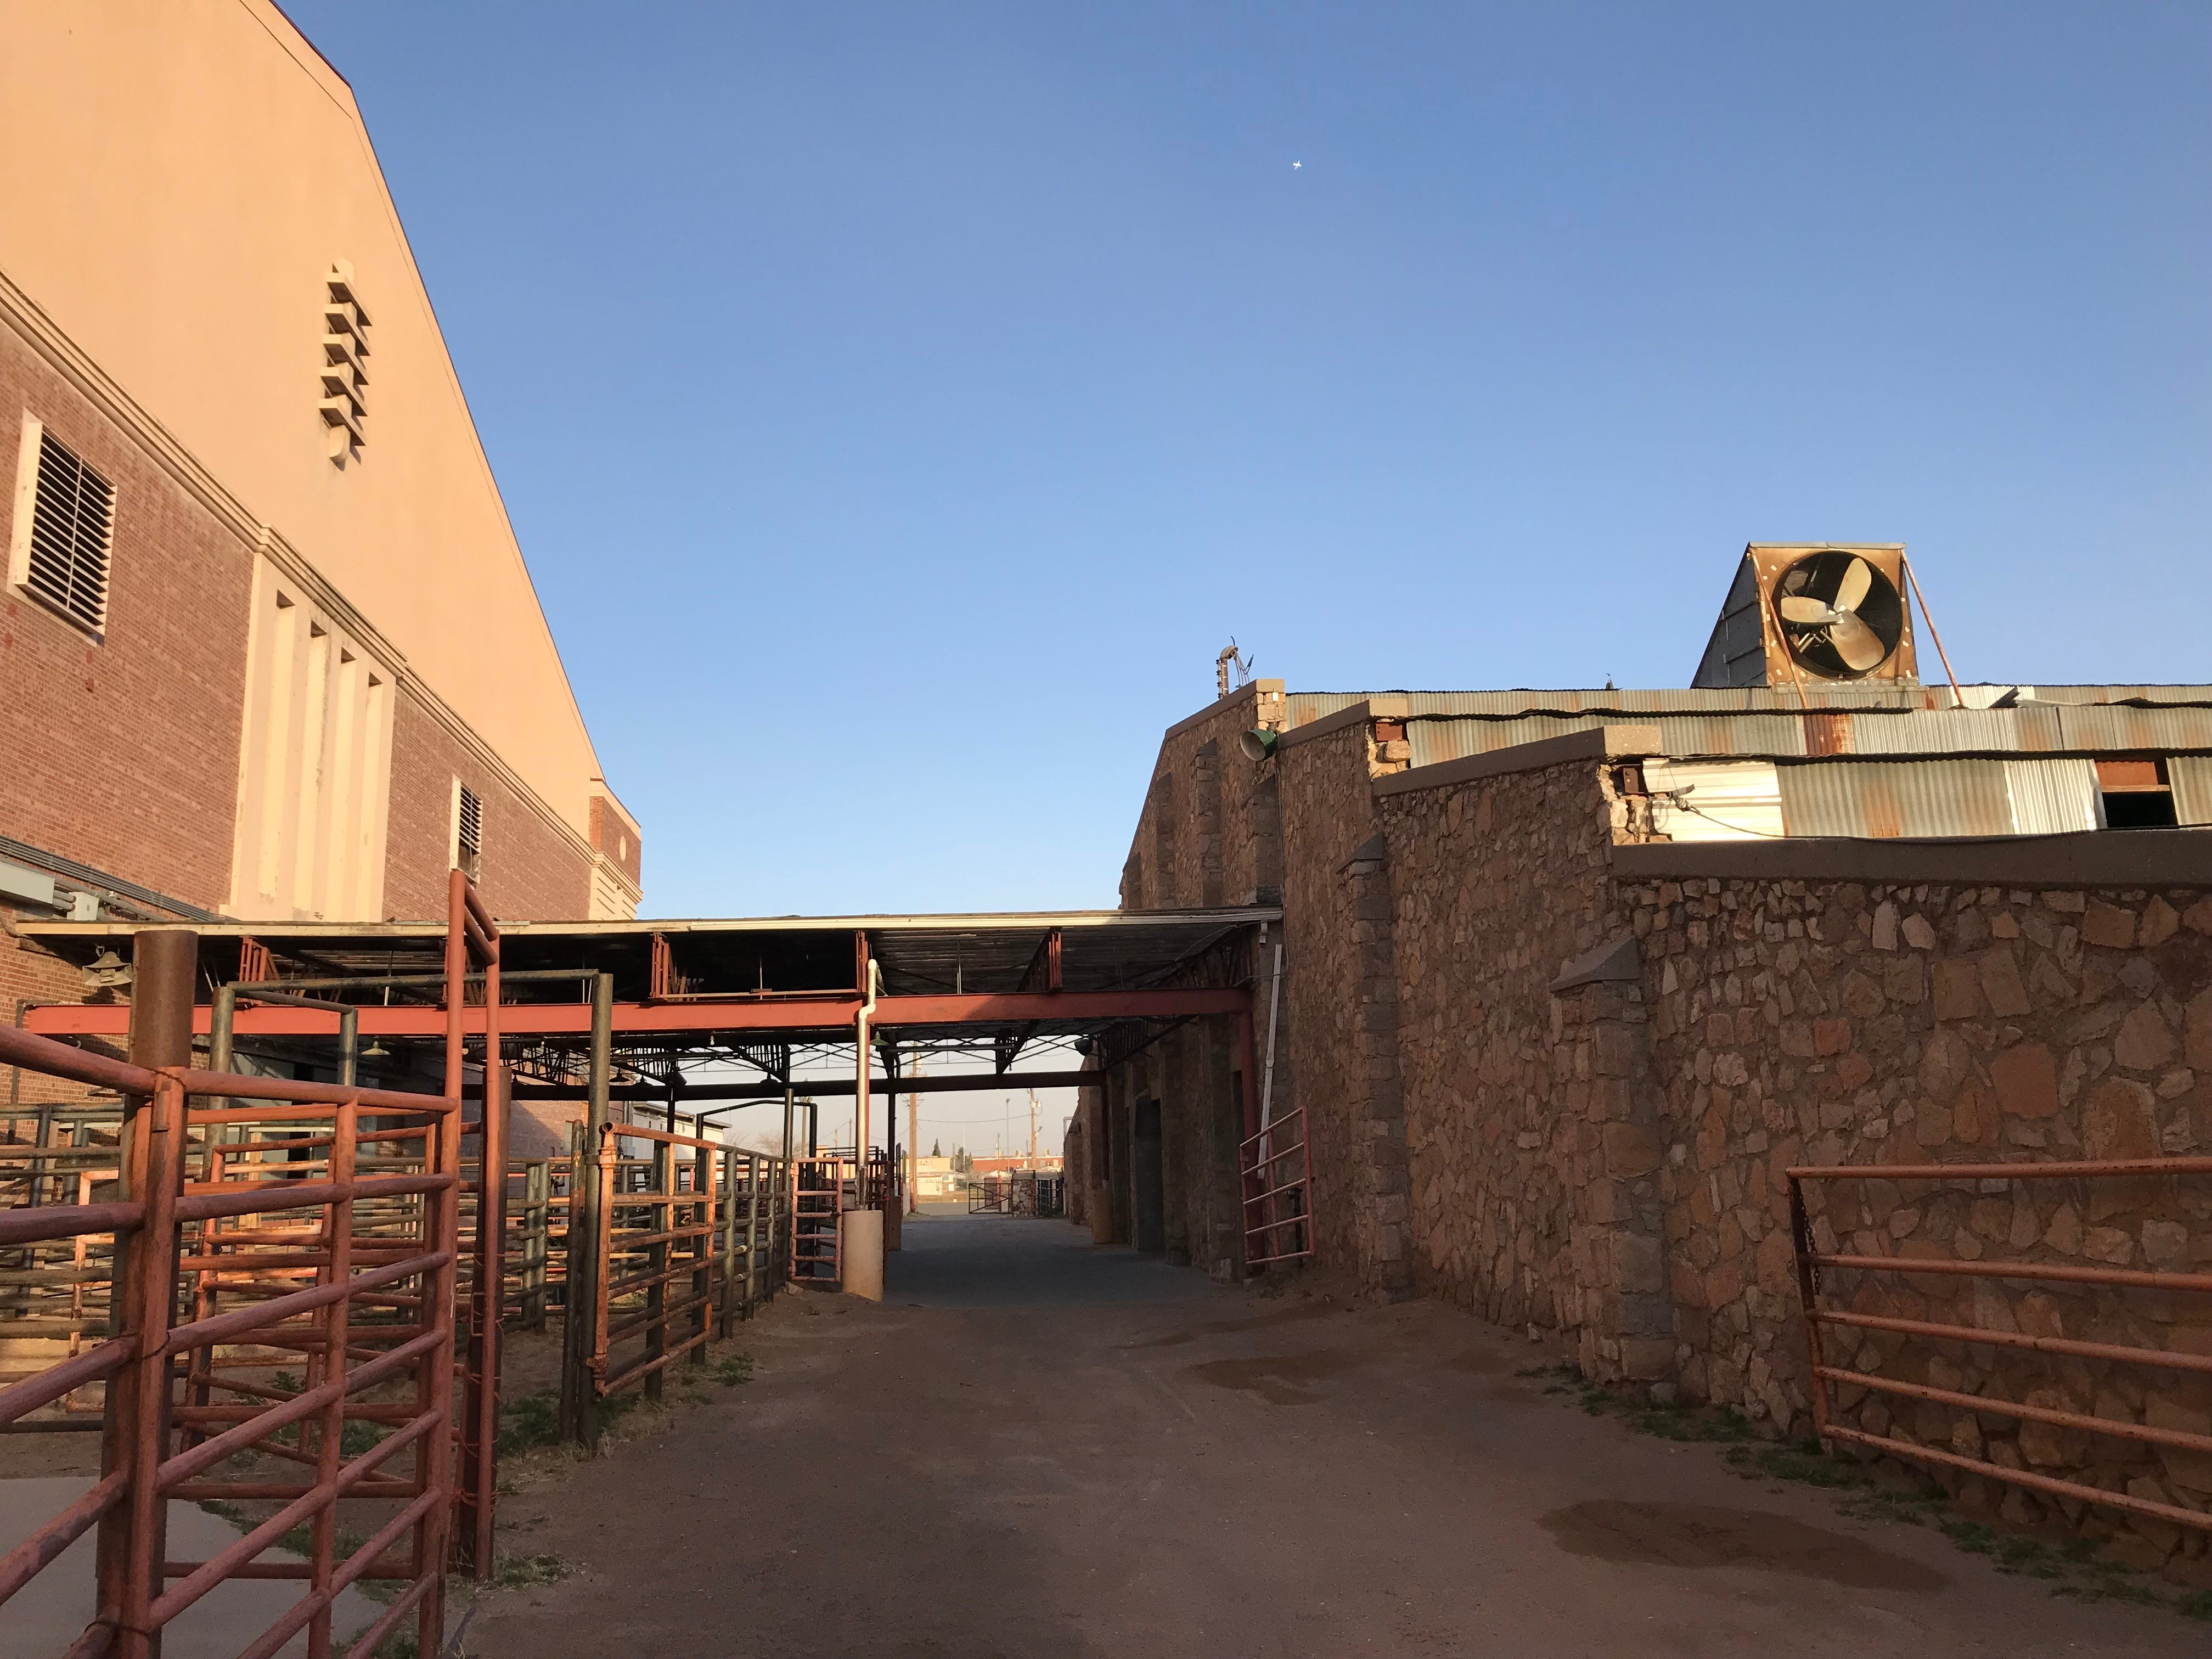 Rail pens for holding livestock show the El Paso County Coliseum's key role in the history of rodeos in the Borderland.